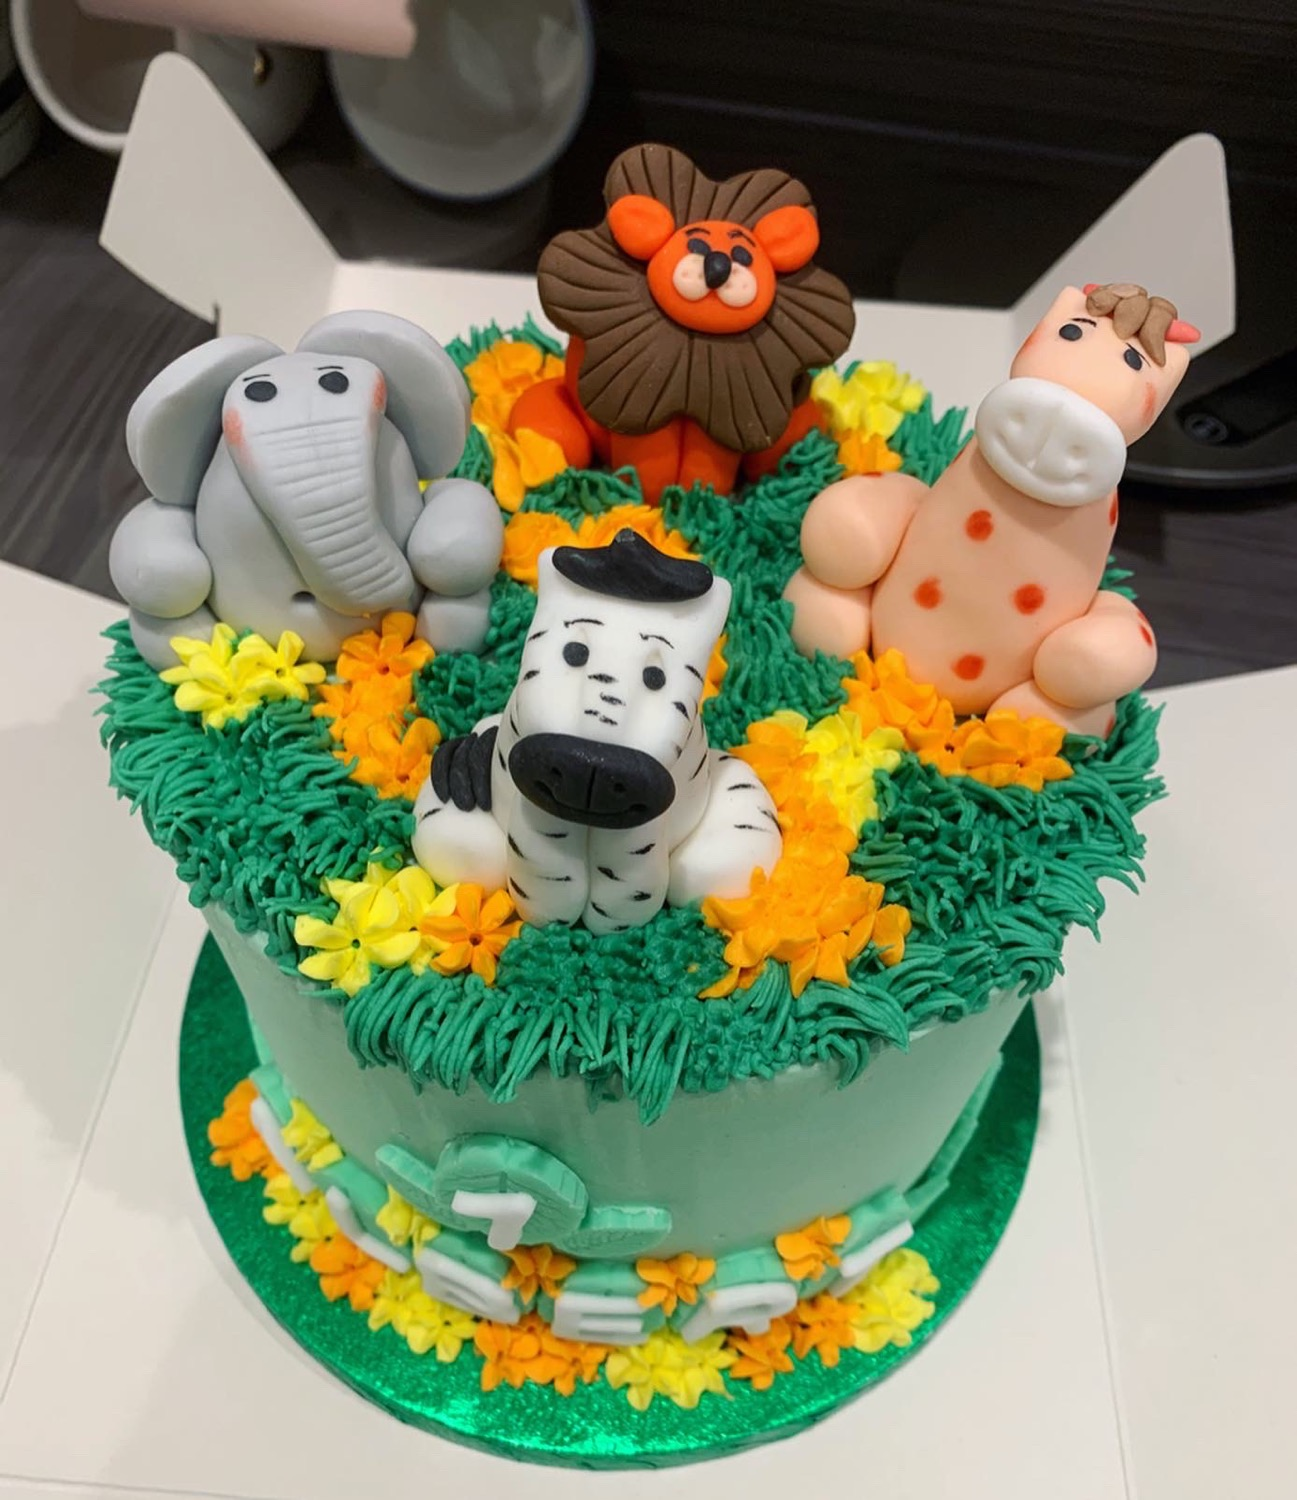 Jungled themed birthday cake